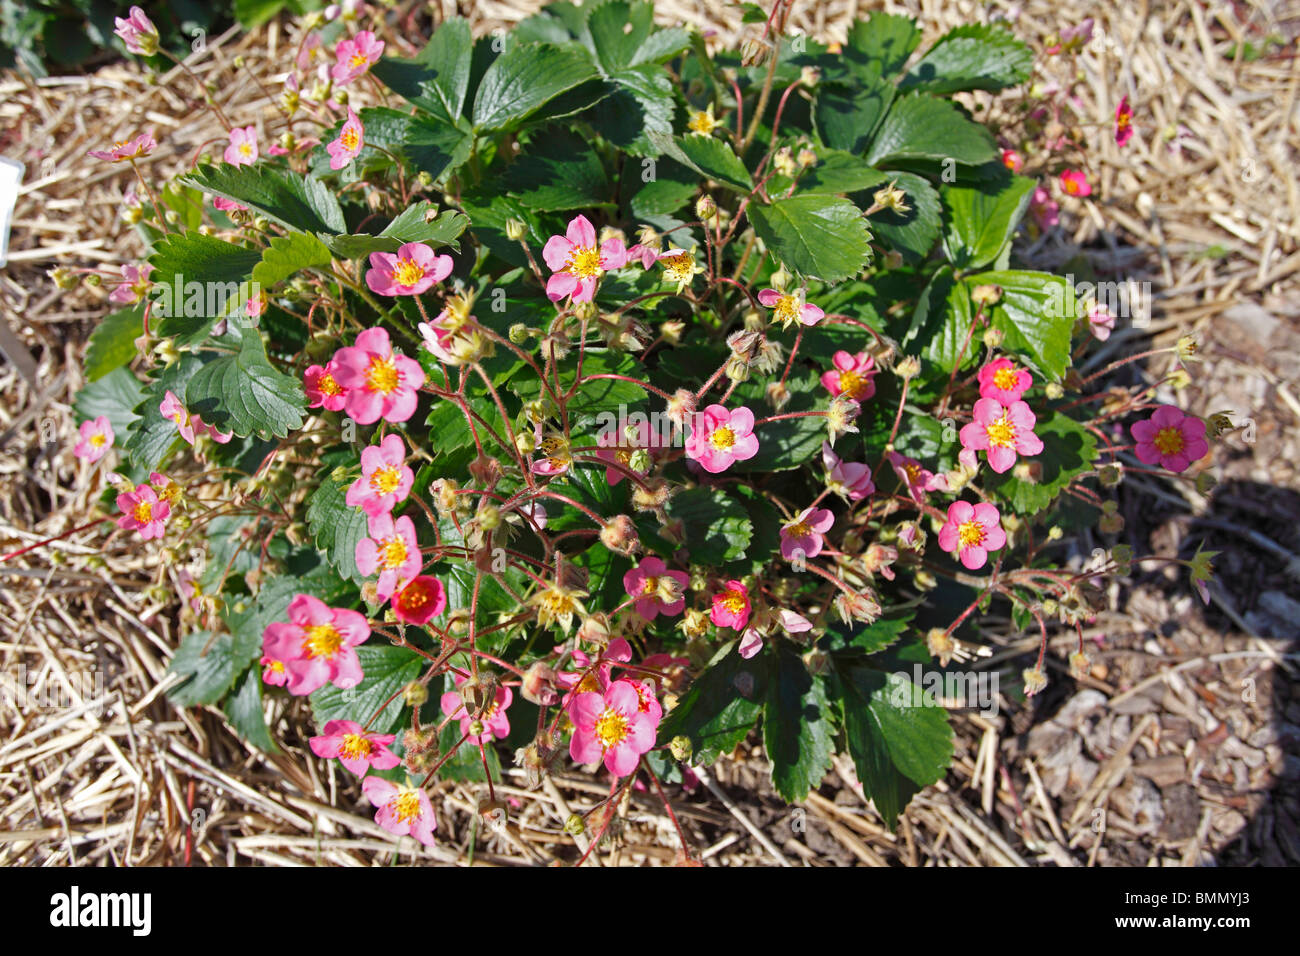 Strawberry fragaria pink panda plant in flower stock photo strawberry fragaria pink panda plant in flower mightylinksfo